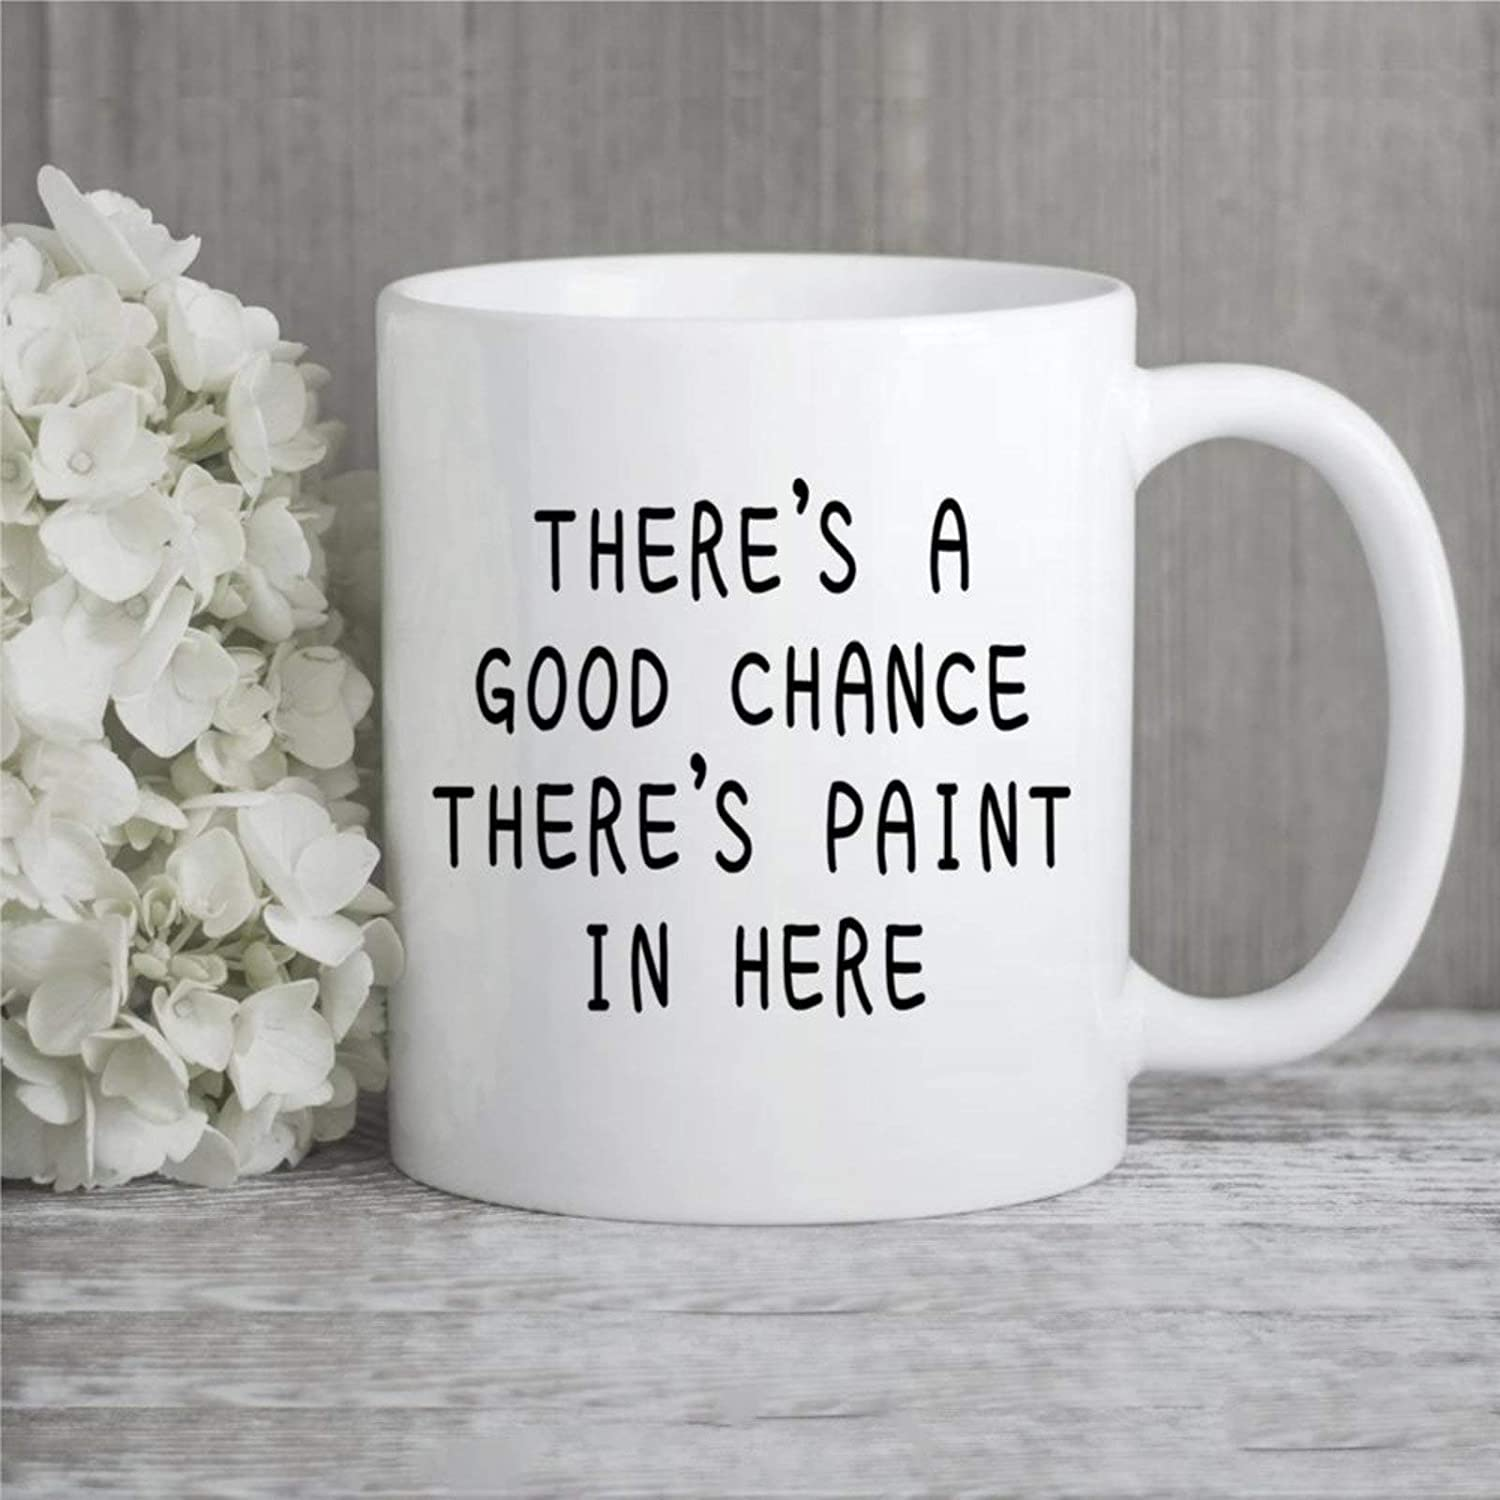 A Good Chance There's Paint In Here Coffee Mug,Ceramic Mug Cup for Office and Home,Tea Milk,Birthday For Her or Him,11oz